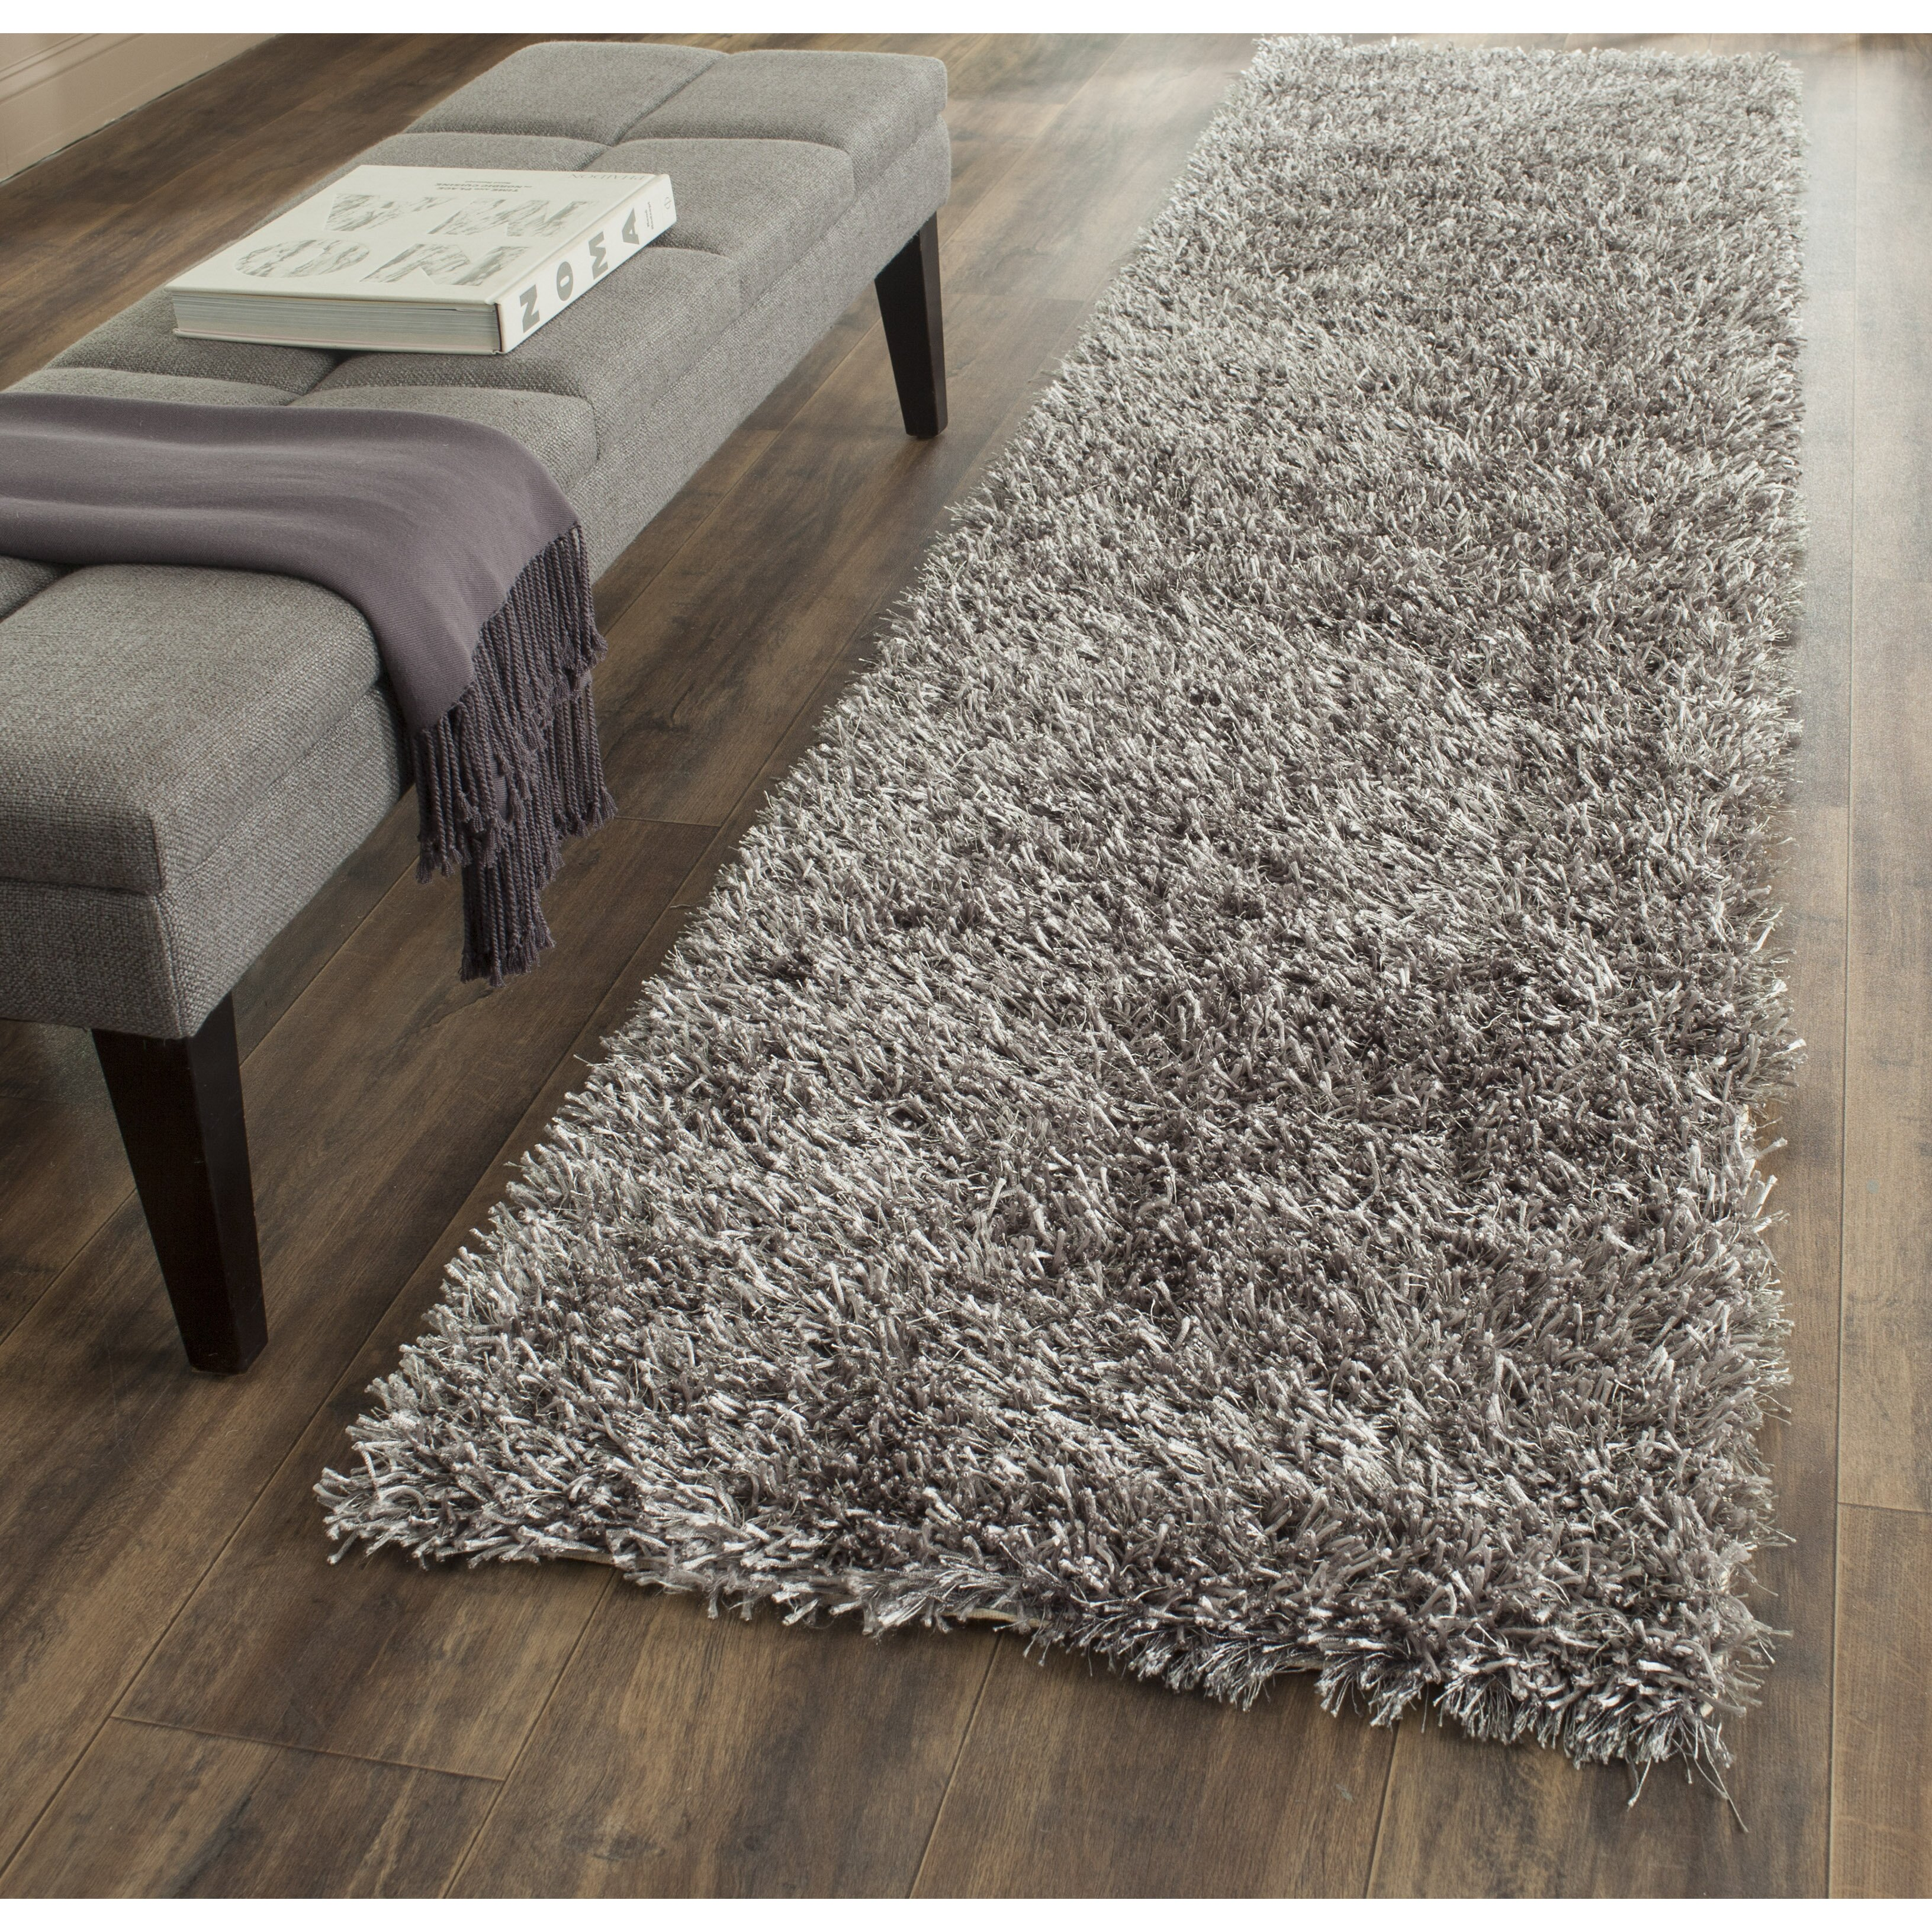 safavieh paris shag grey area rug reviews wayfair. Black Bedroom Furniture Sets. Home Design Ideas